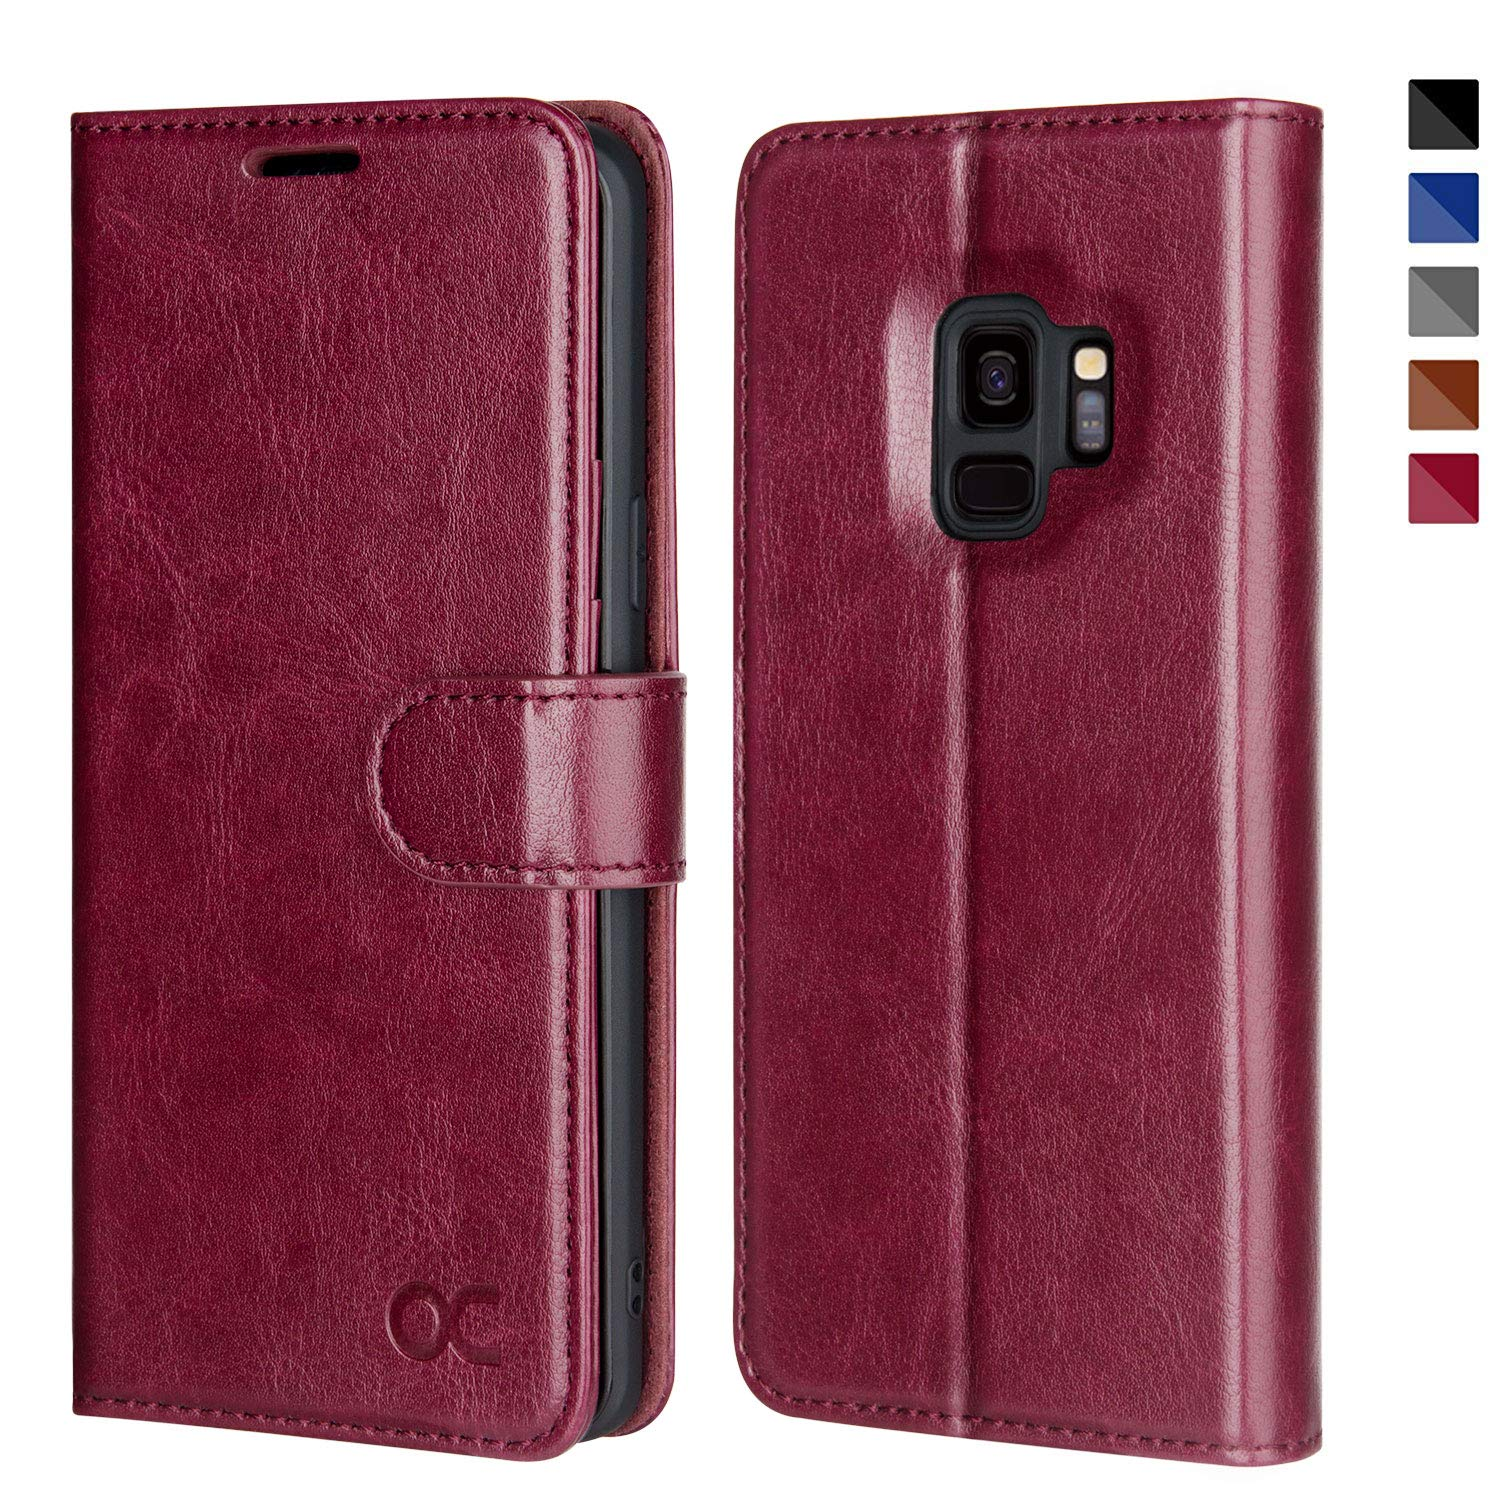 promo code 20048 9eca2 OCASE Samsung Galaxy S9 Case Leather Flip Wallet Case for Samsung Galaxy S9  Devices (Burgundy)